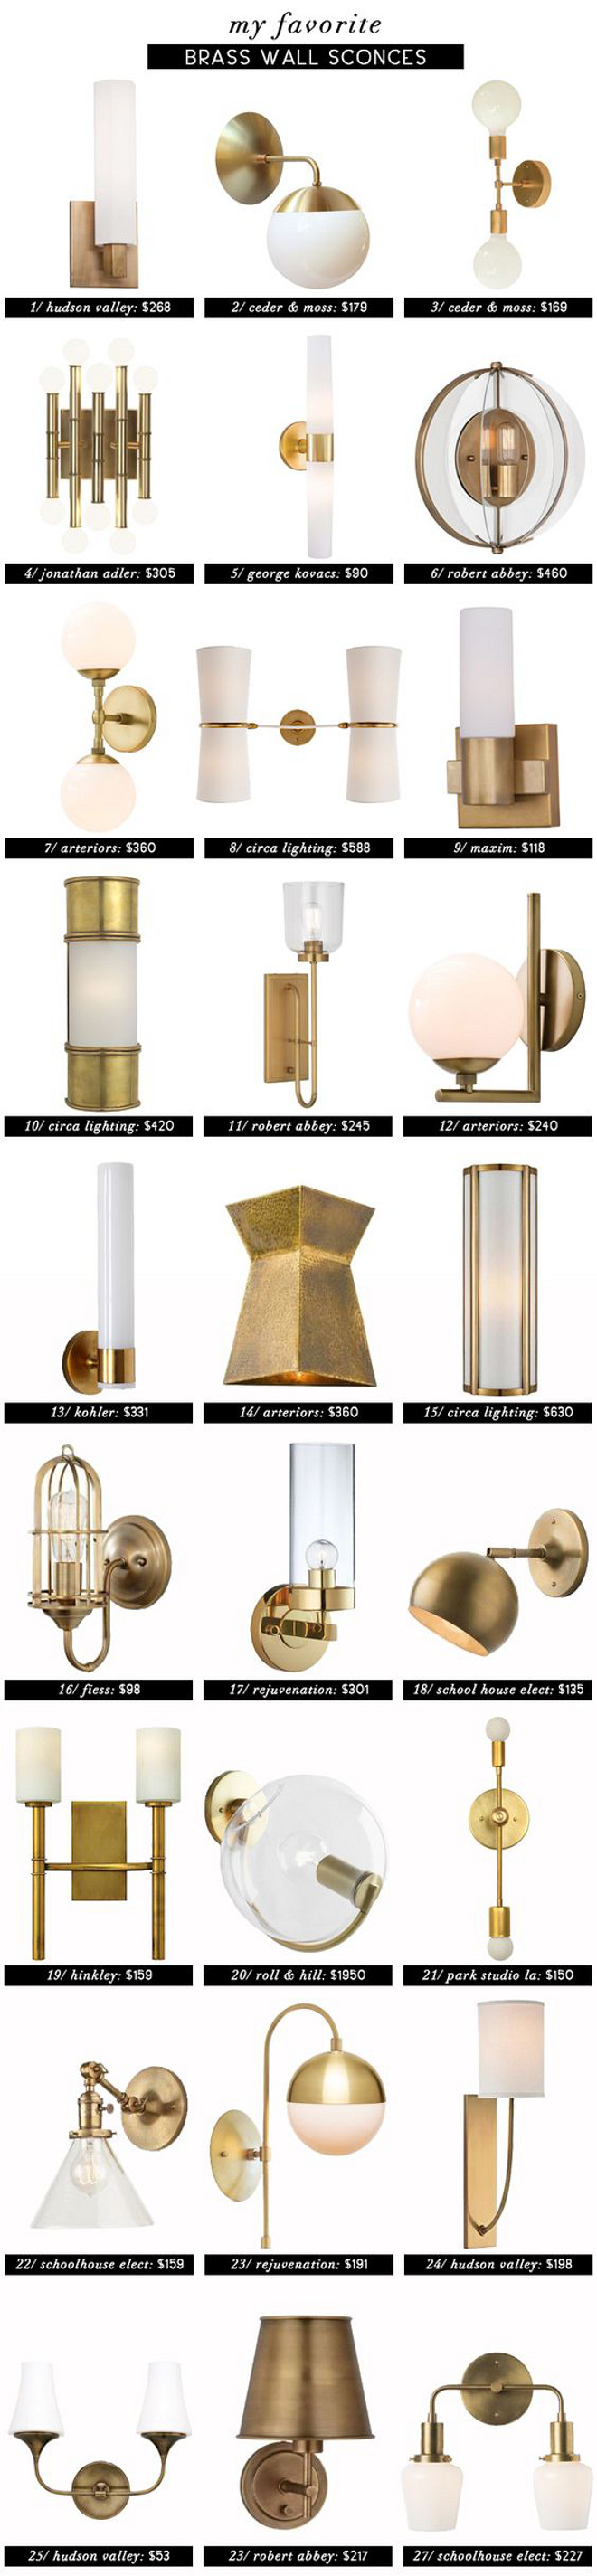 Brass Wall Sconces Roundup. Brass Wall Sconces. List of Brass Wall Sconces with price. # BrassWallSconces #BrassSconce #Brasssconces #ListBrassSconces #SconcePrice Via Emily Henderson.